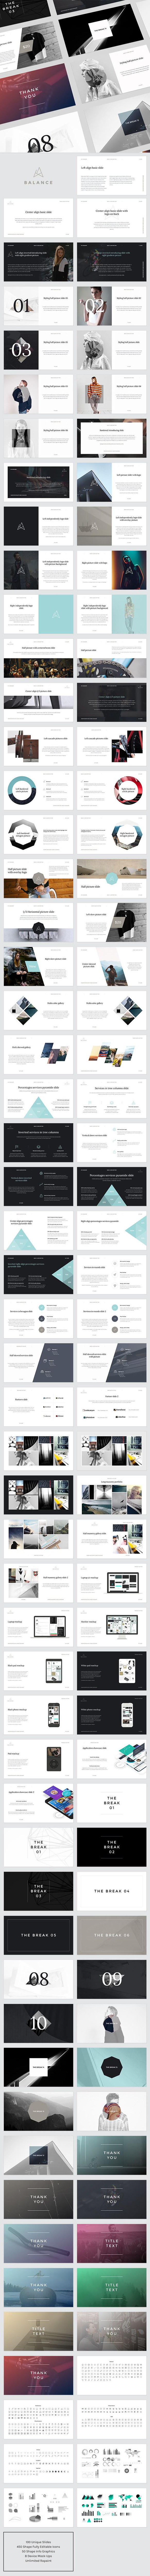 BALANCE PowerPoint Presentation by GoaShape. Price $20 #minimalistpresentationdesign #powerpointpresentationdesign #businesspowerpointtemplate